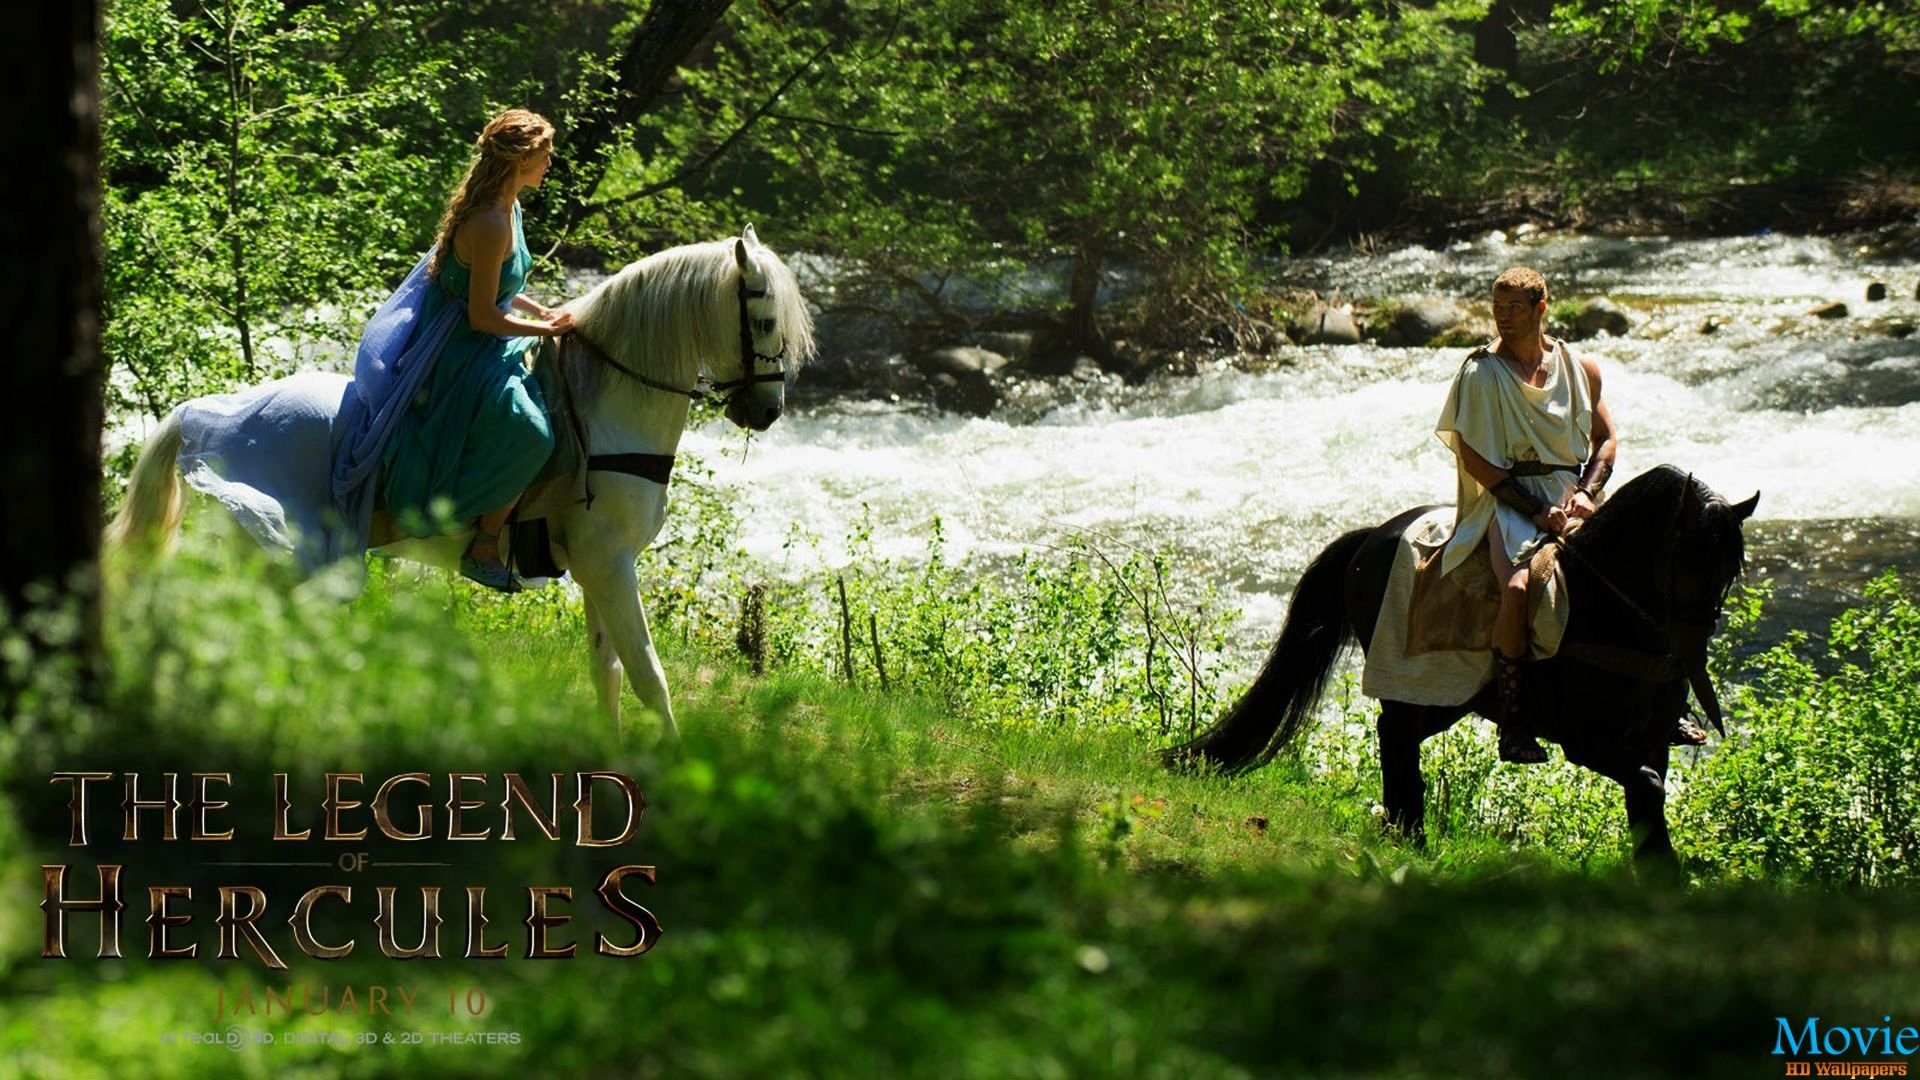 The Legend of Hercules (2014) Movie HD Wallpapers